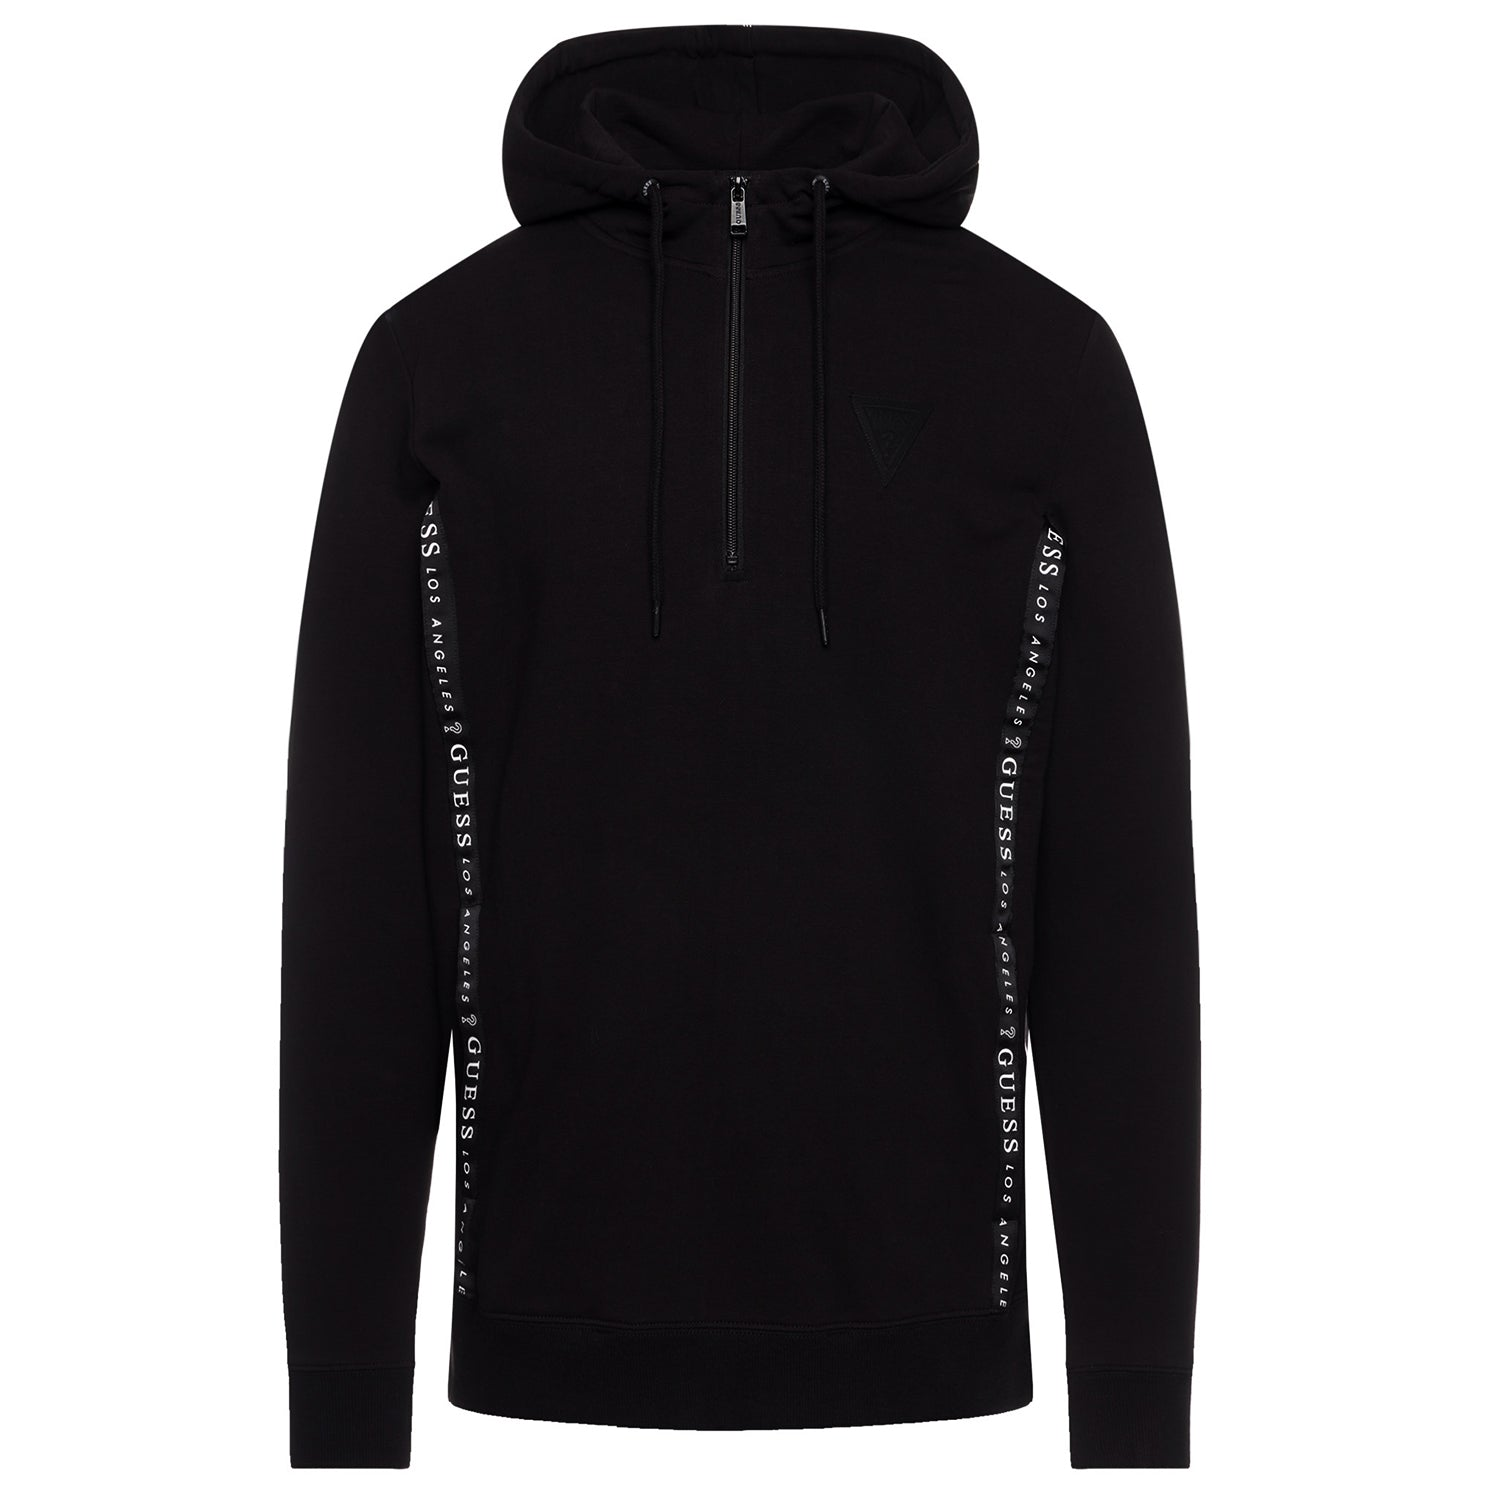 Guess Chase Half Zip up Hooded Sweatshirt